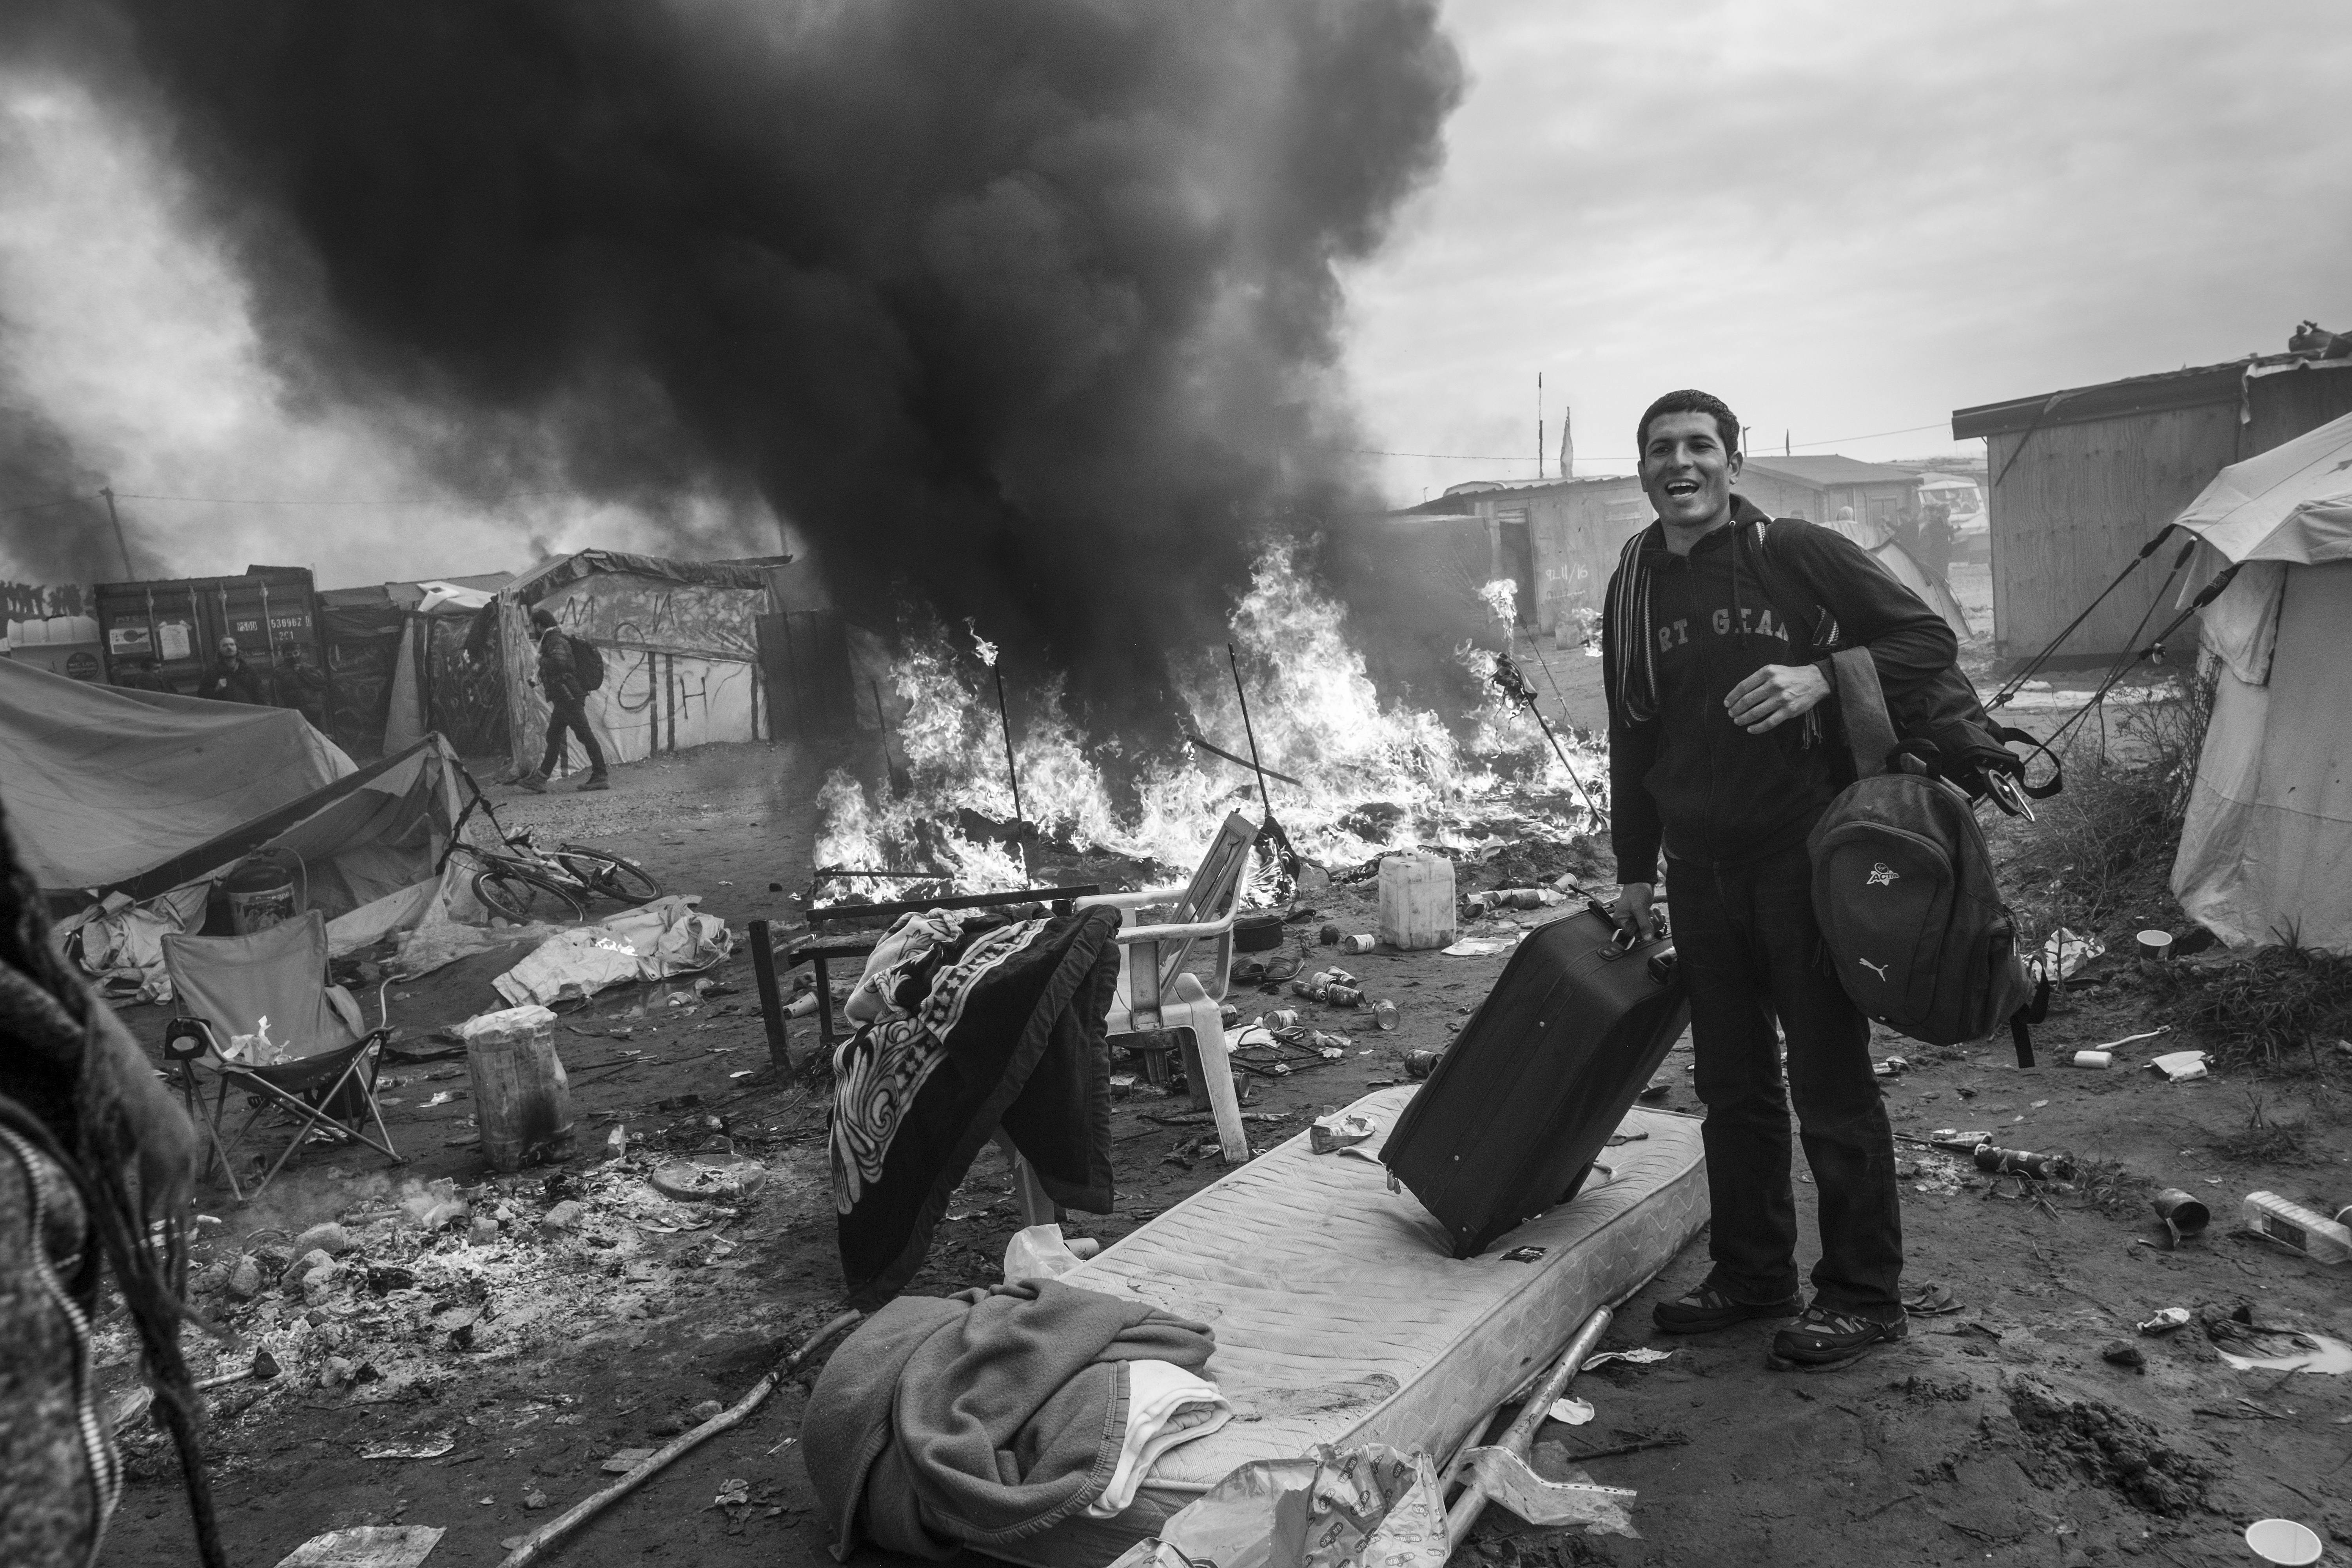 "An Afghan refugee packs his belongings while a fire destroys his tent in ""The Jungle"" on the third day of a police operation. The French authorities are trying to close and demolish the makeshift refugee camp next to the highway leading to the port of Calais. An estimated 8,000 refugees and migrants have been staying here, trying to reach the UK. (26 October 2016) - Photo: Joel van Houdt"